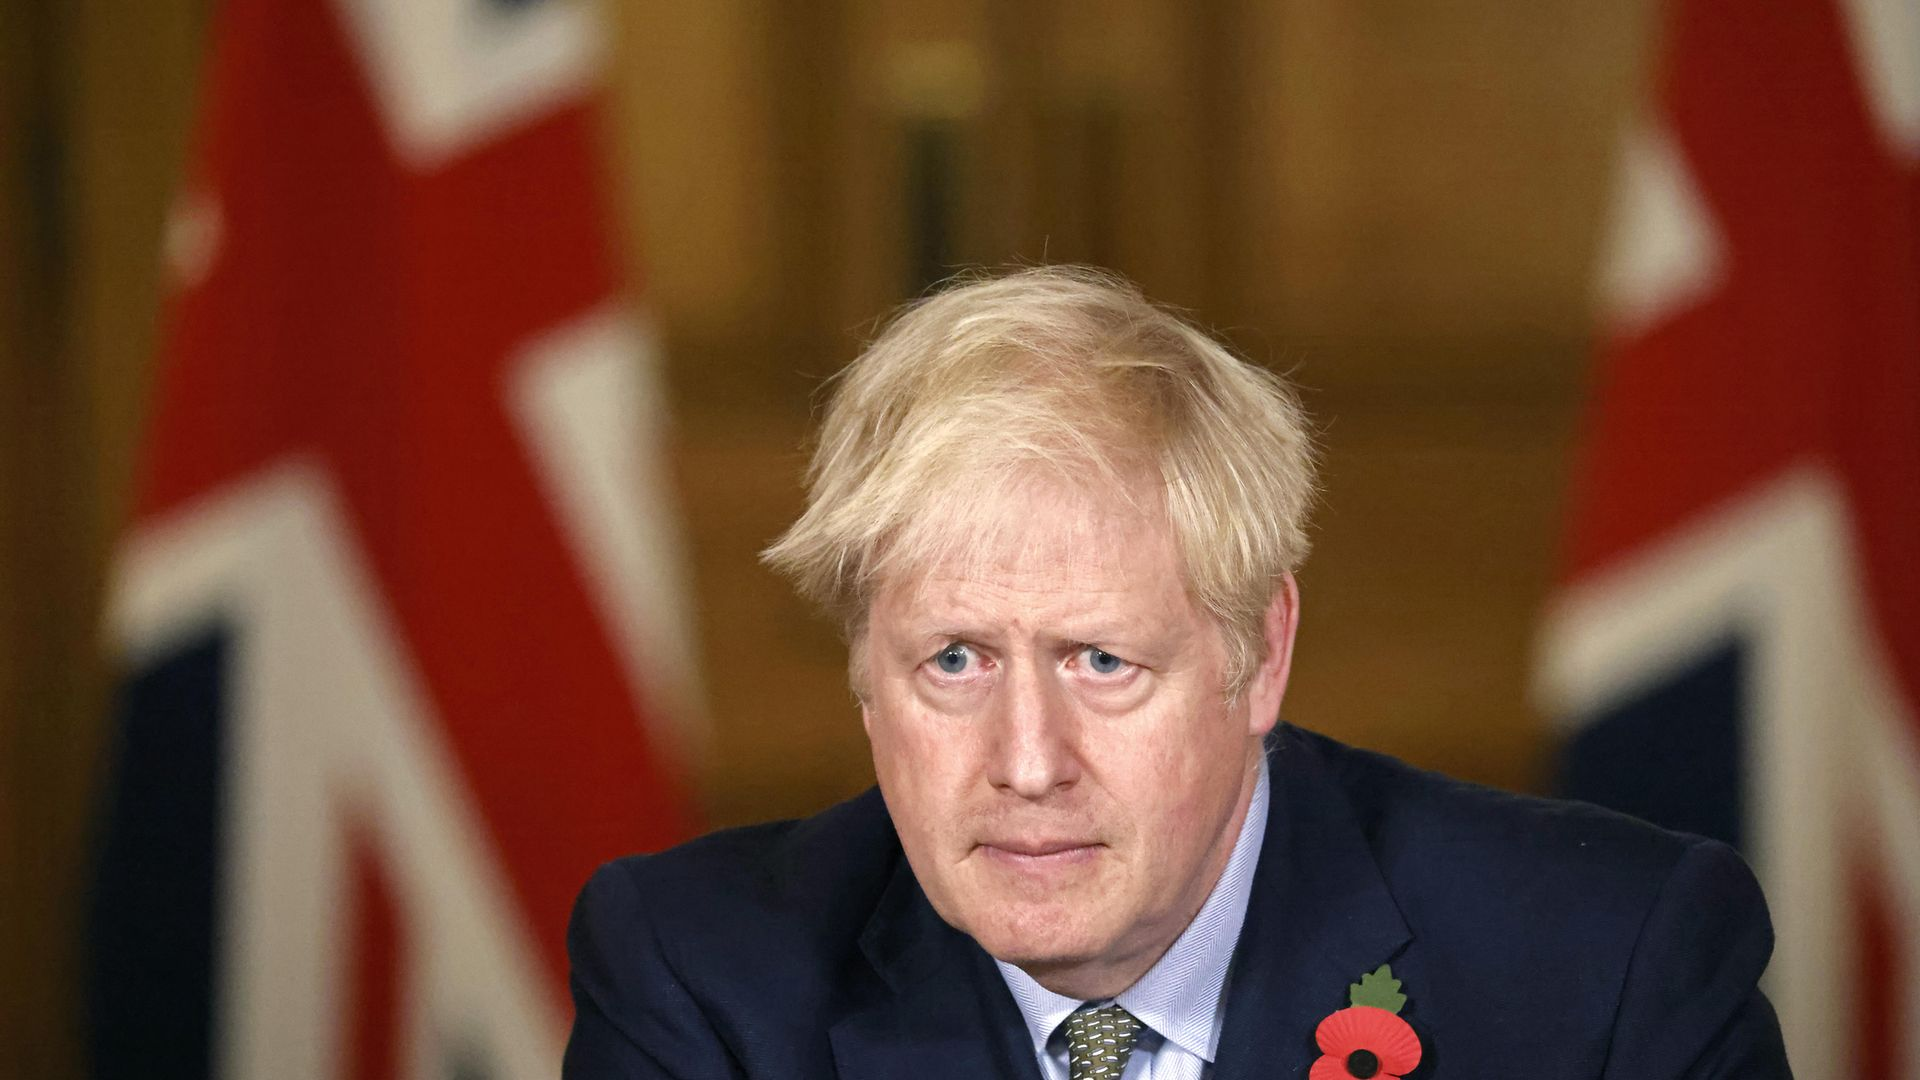 Prime Minister Boris Johnson during a media briefing in Downing Street, London, on coronavirus (COVID-19). - Credit: PA